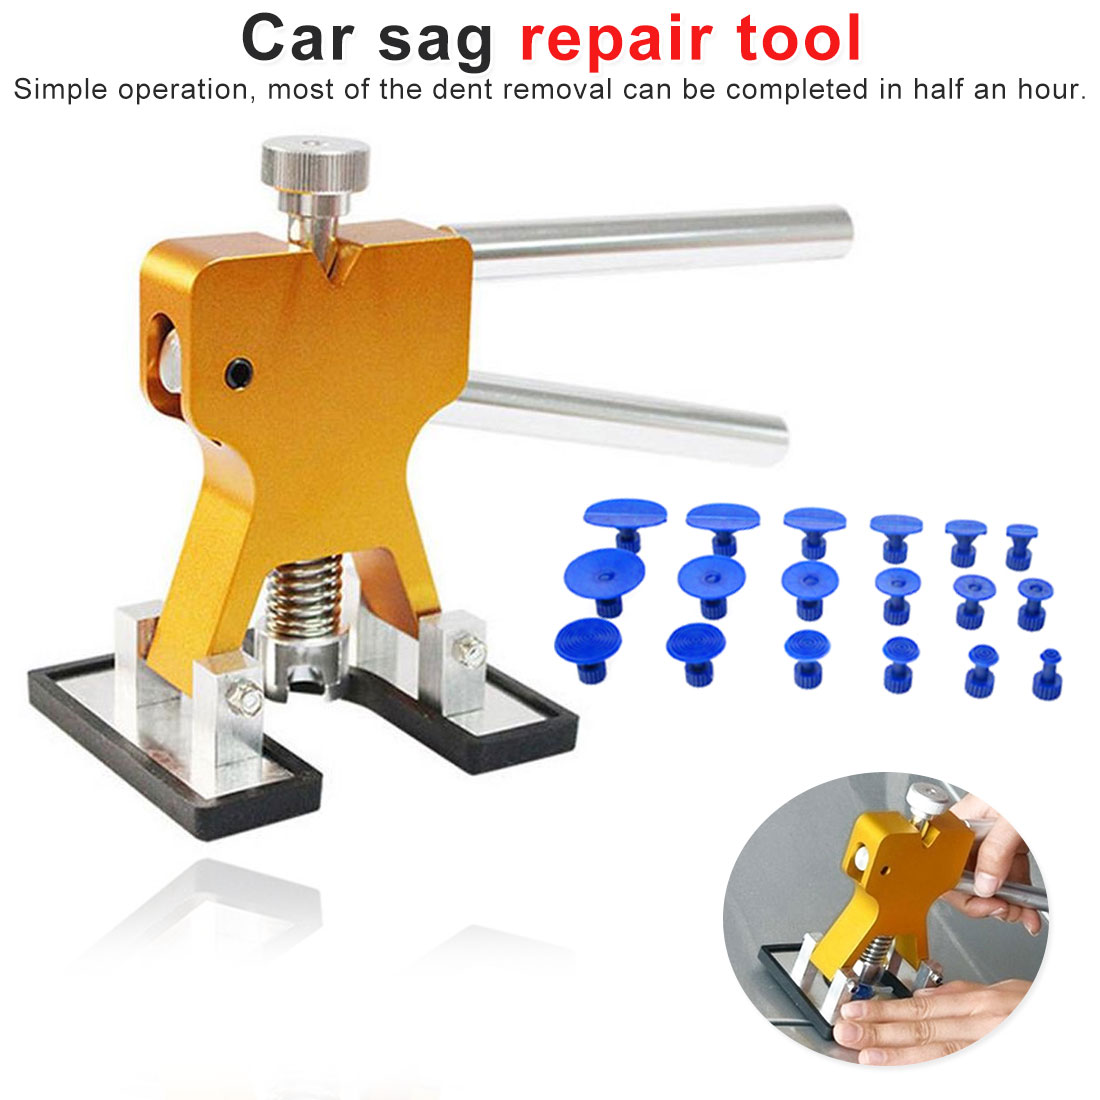 Car Body Paintless Dent Puller Lifter Repair Tool +18 Tabs Car Dent Remover Car Dent Repair Tools Cars Tool Kit Hand Tool Sets